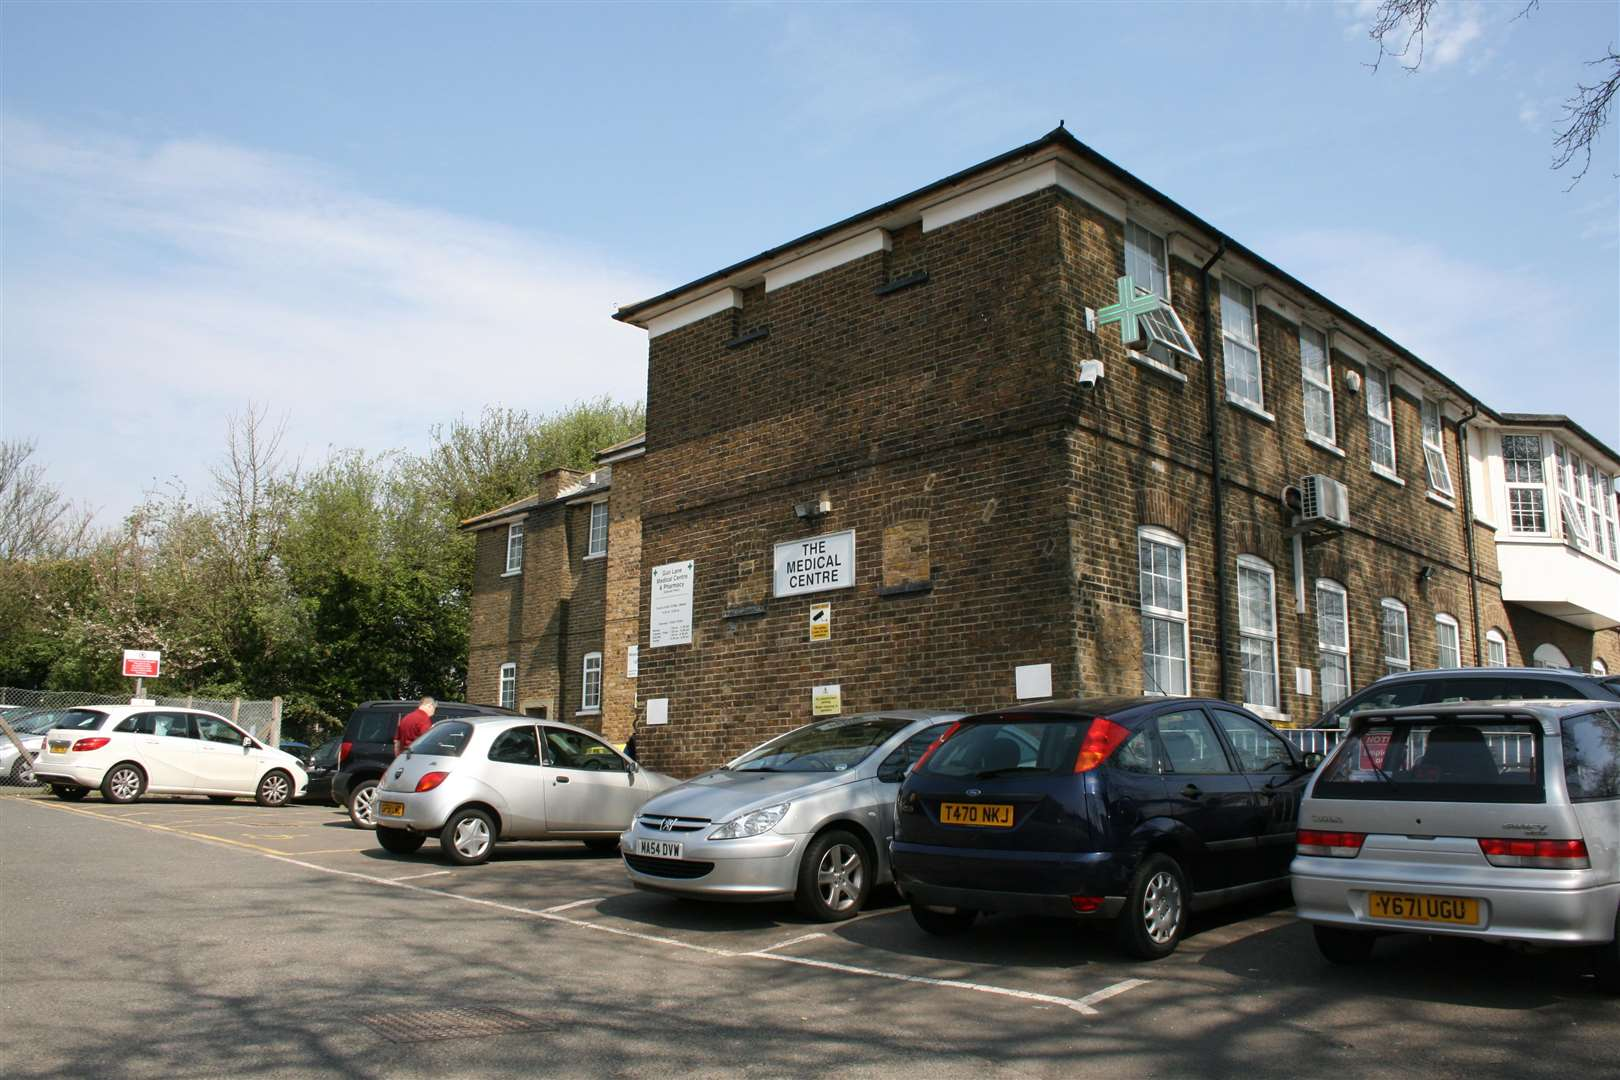 Dermatology services will remain open at Gun Lane Medical Centre